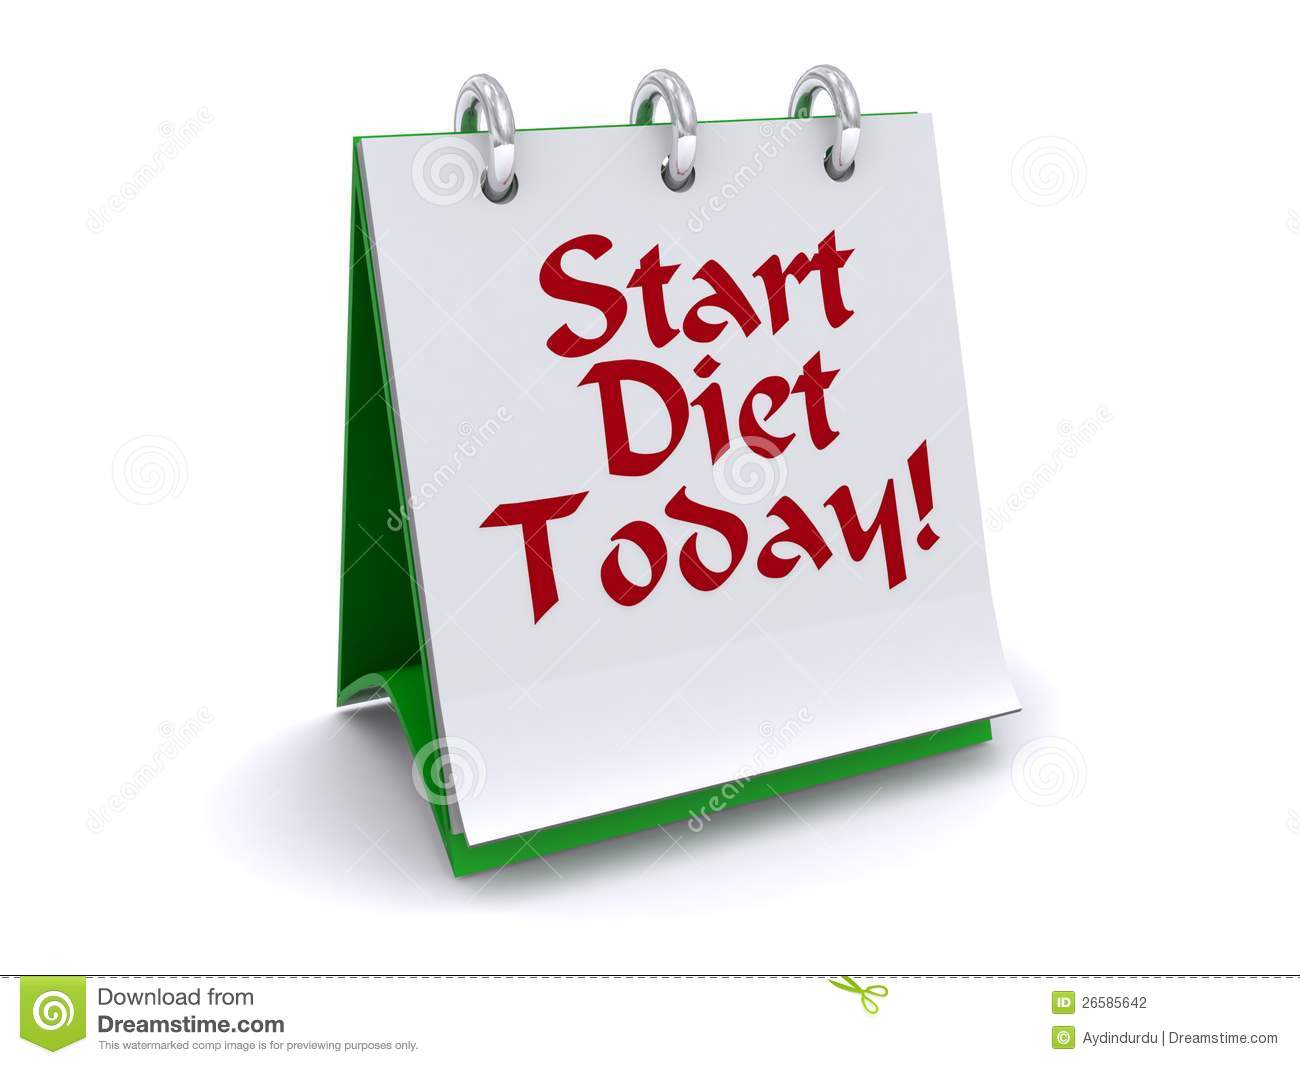 How to Start a Diet: Tips to Remember